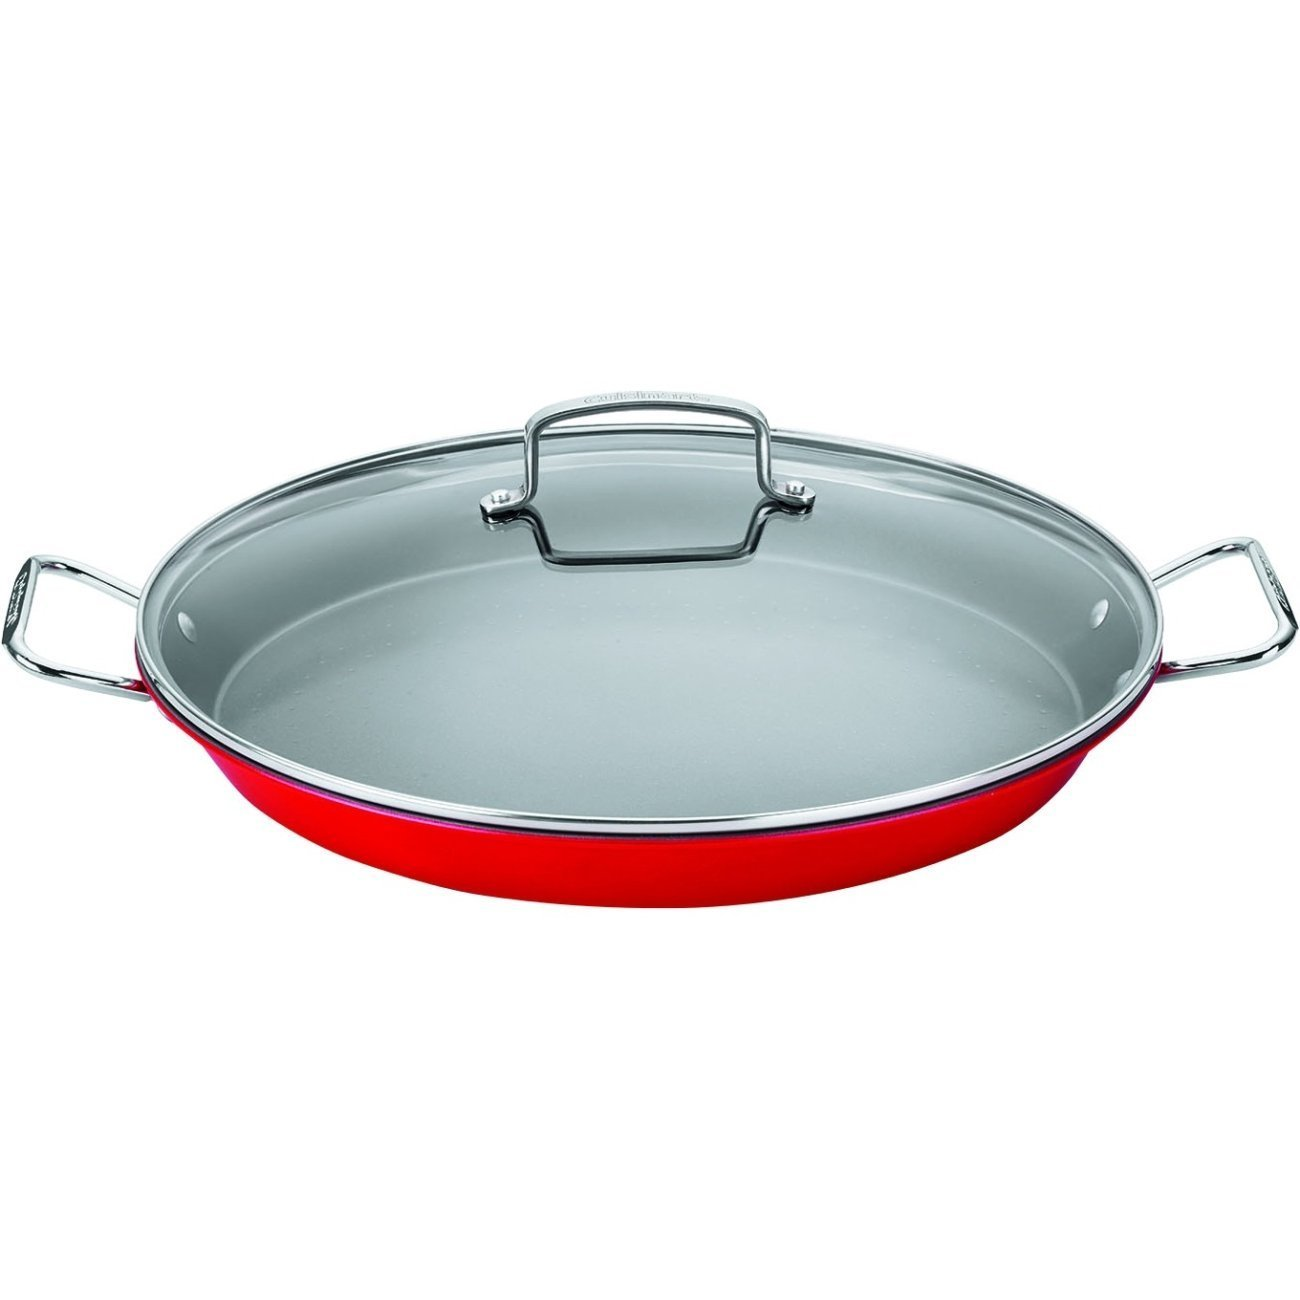 Cuisinart ASP-38CR Non-Stick Paella Pan, 15'', Red